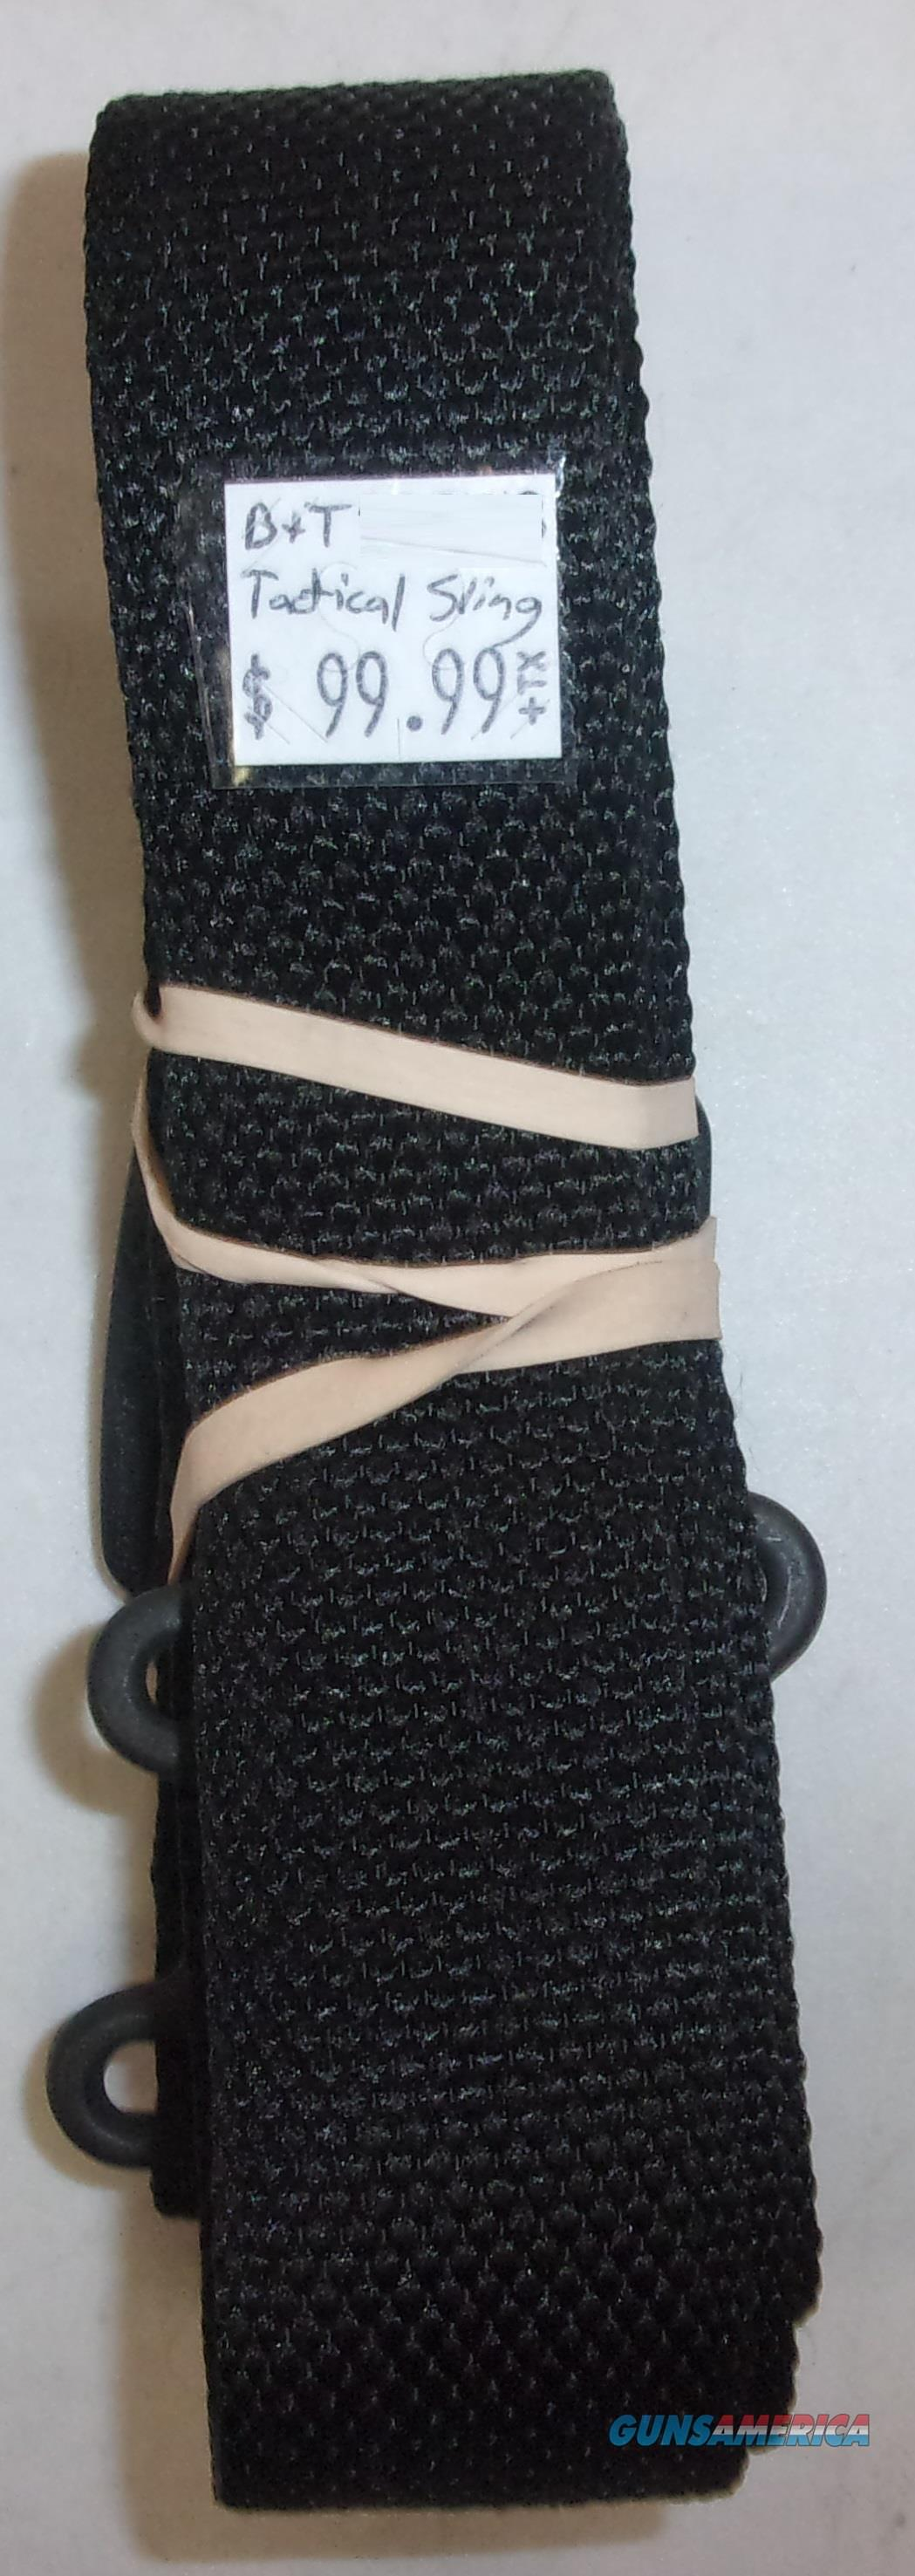 B&T Tactical Sling  Non-Guns > Miscellaneous